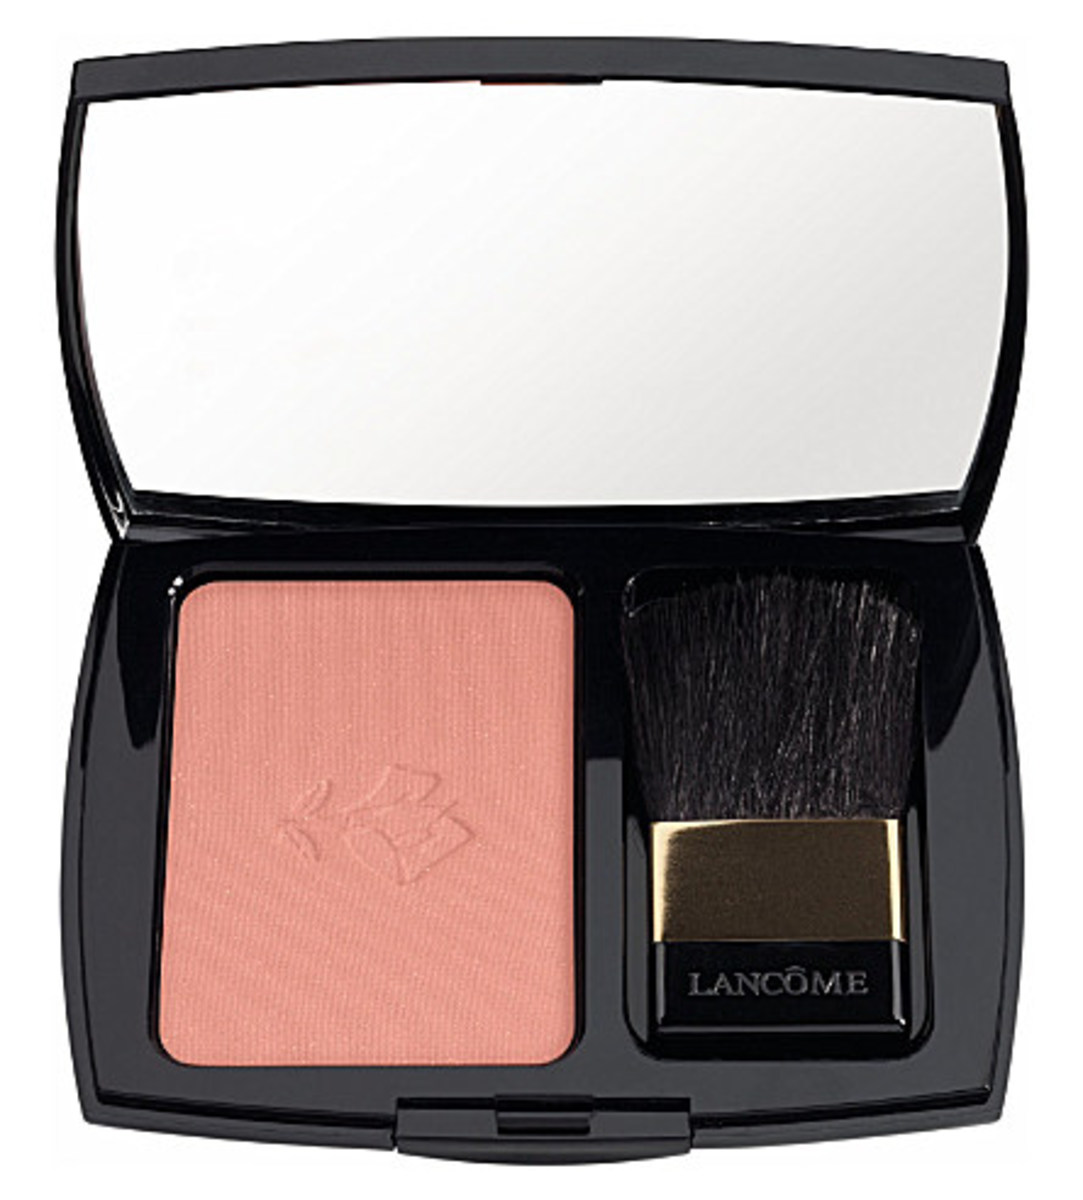 Lancome Blush Subtil in Rose Sable